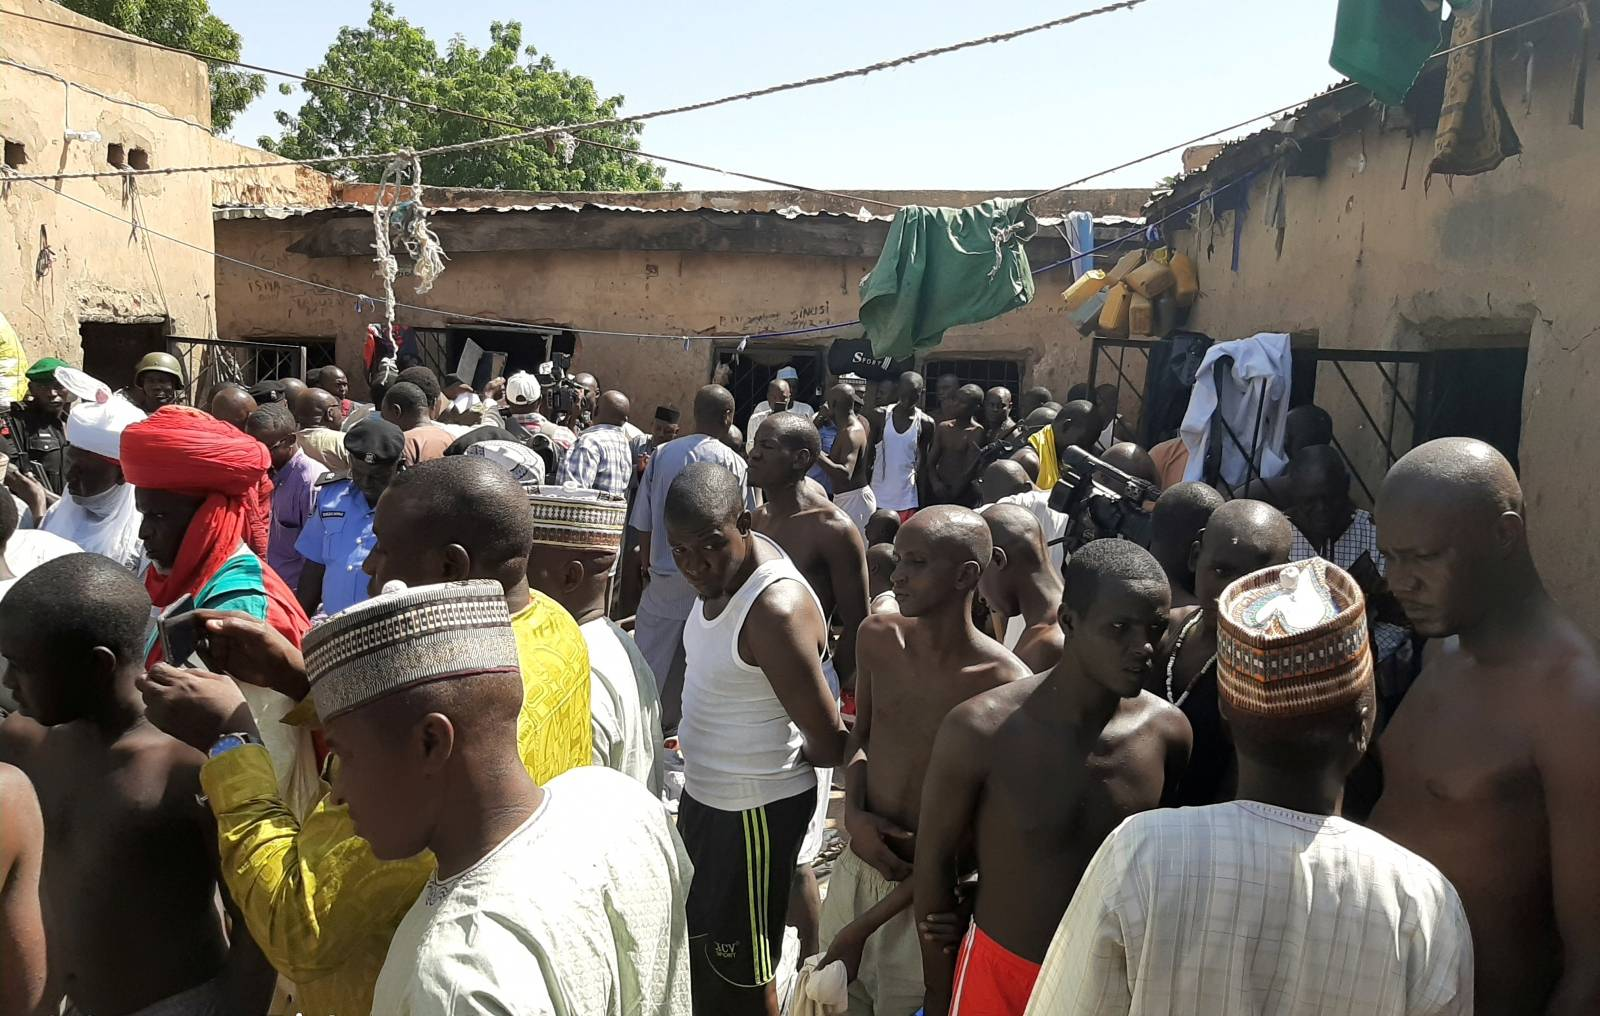 Police officers, journalists and a traditional chief stand next to people who were rescued by police in Sabon Garin, in Daura local government area of Katsina state